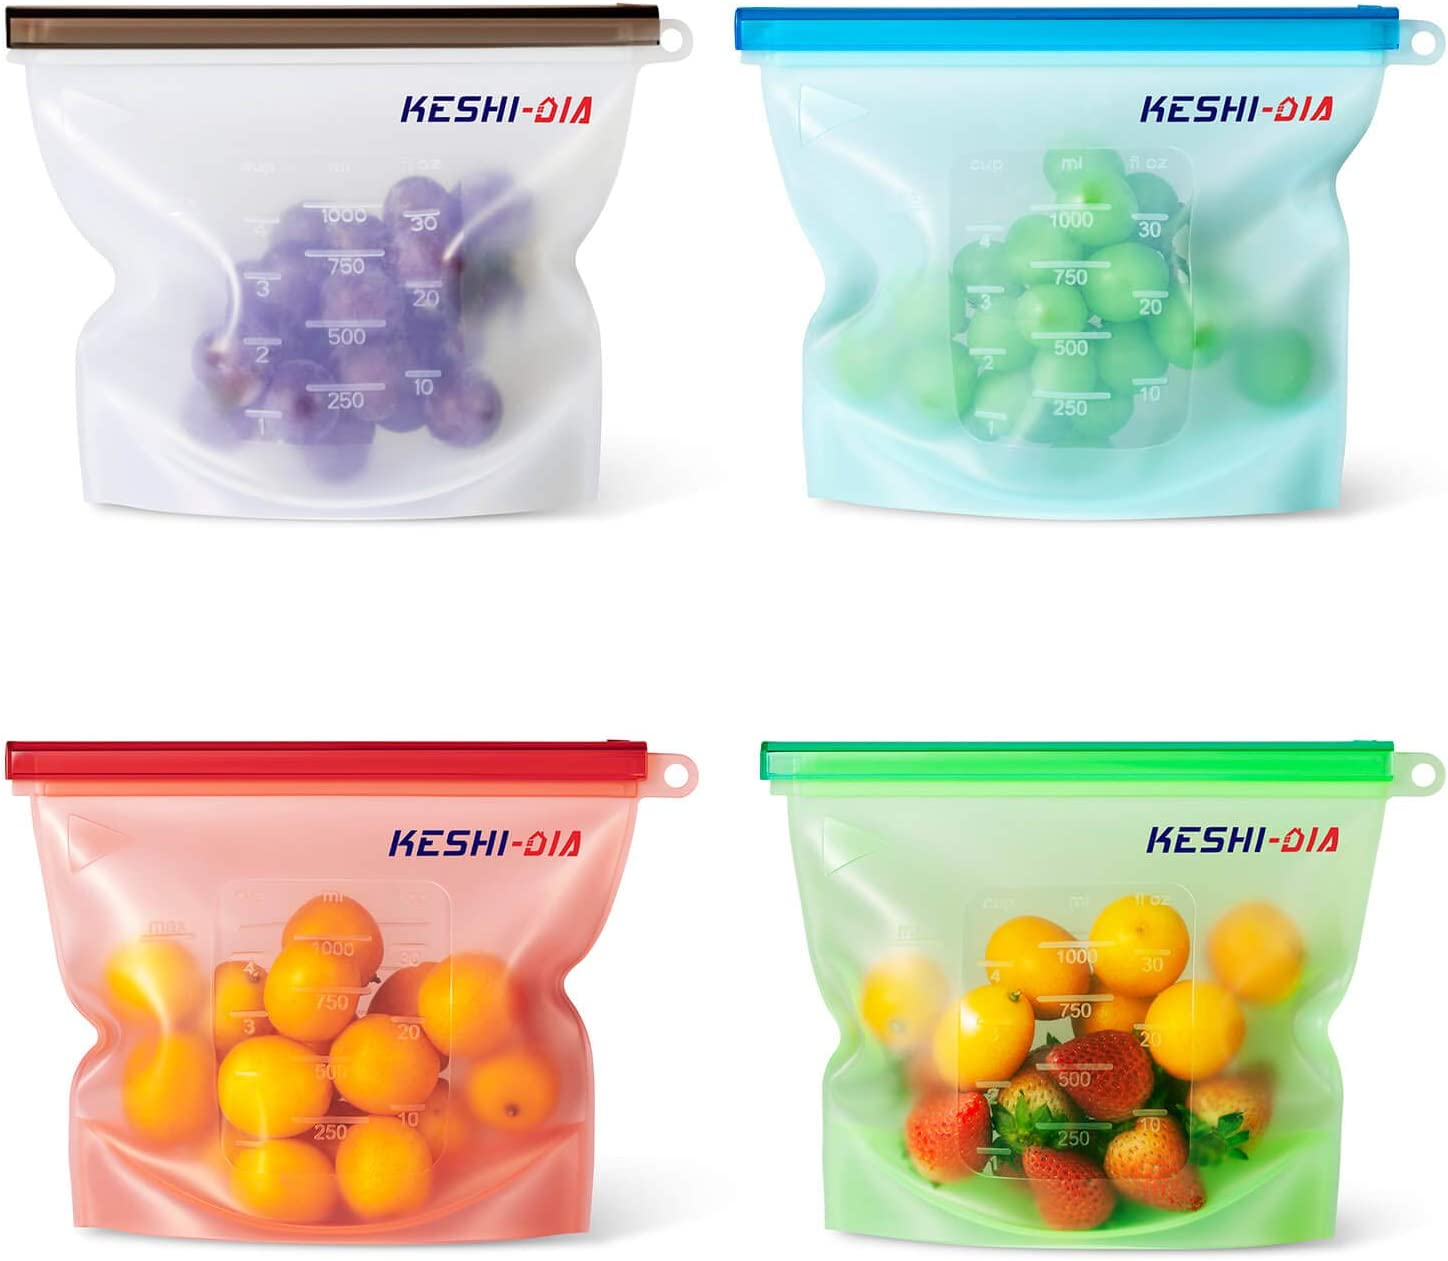 Reusable Silicone Food Storage Bag, Airtight Seal Sous Vide Preservation Container for Cooking, Fruits, Vegetables, Sandwich and Meats, FDA Grade BPA Free (4 pack of 30 oz)